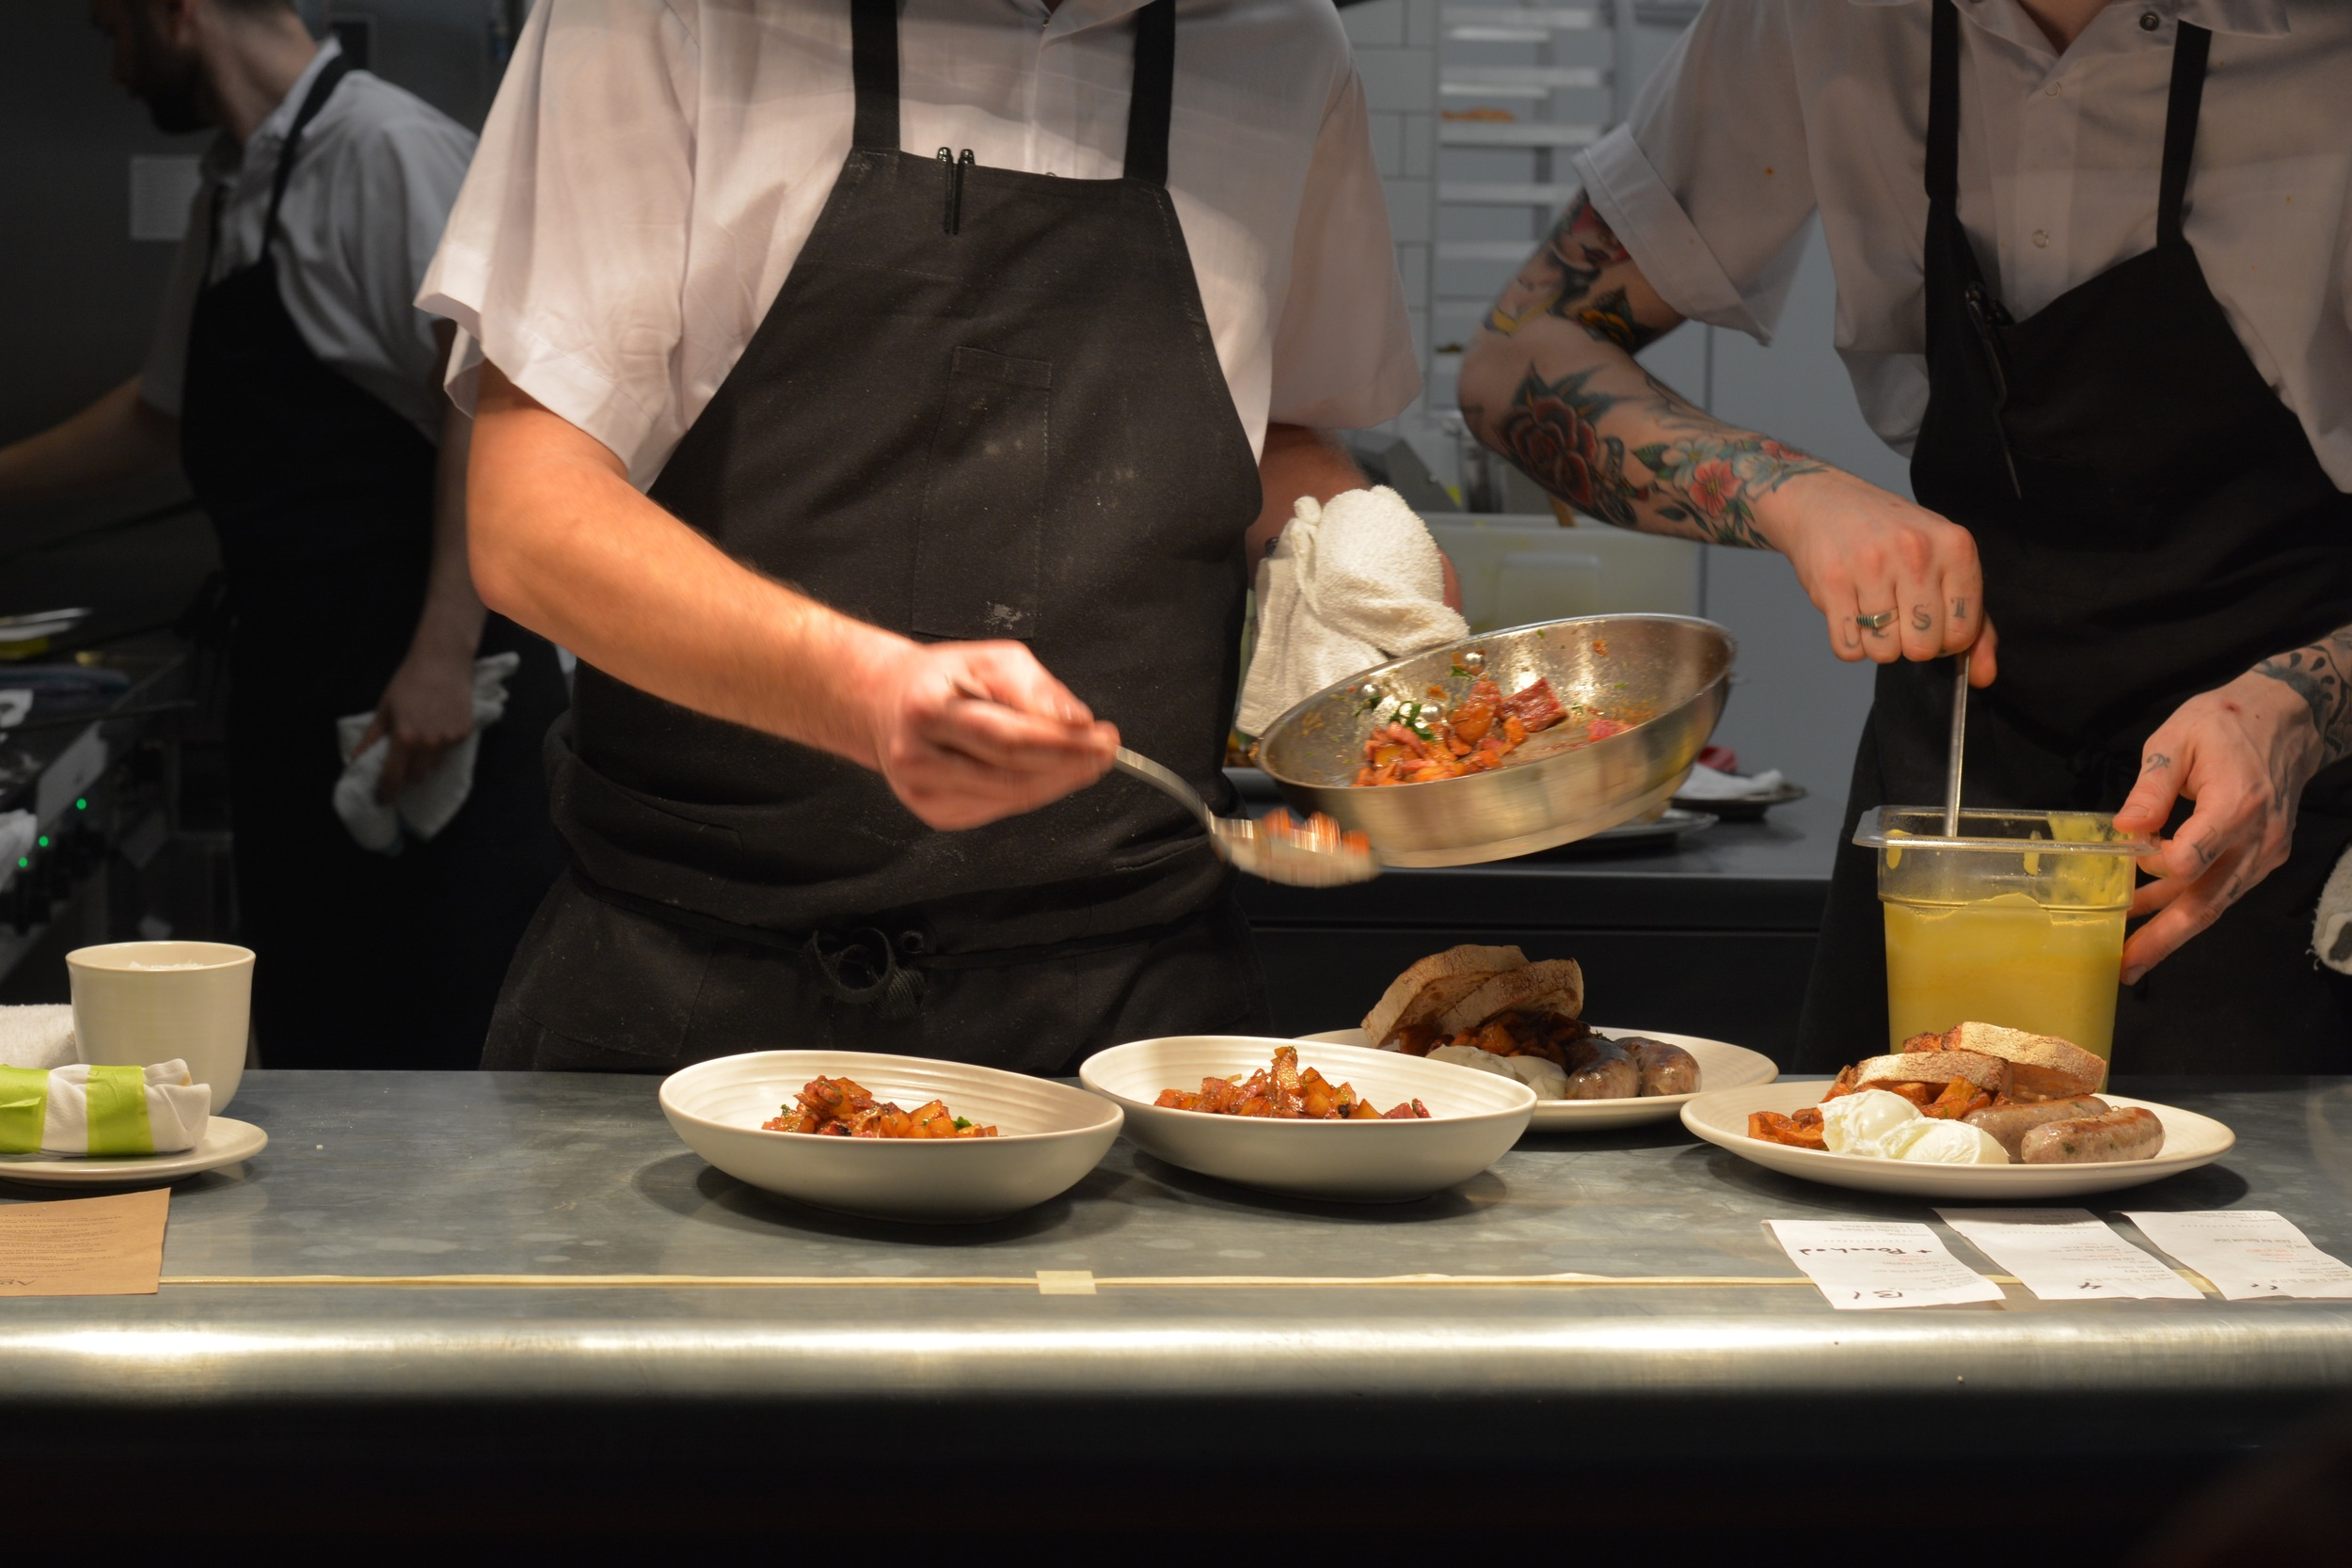 Brunch service at Agrius by Fol Epi // image by Chantal Ireland